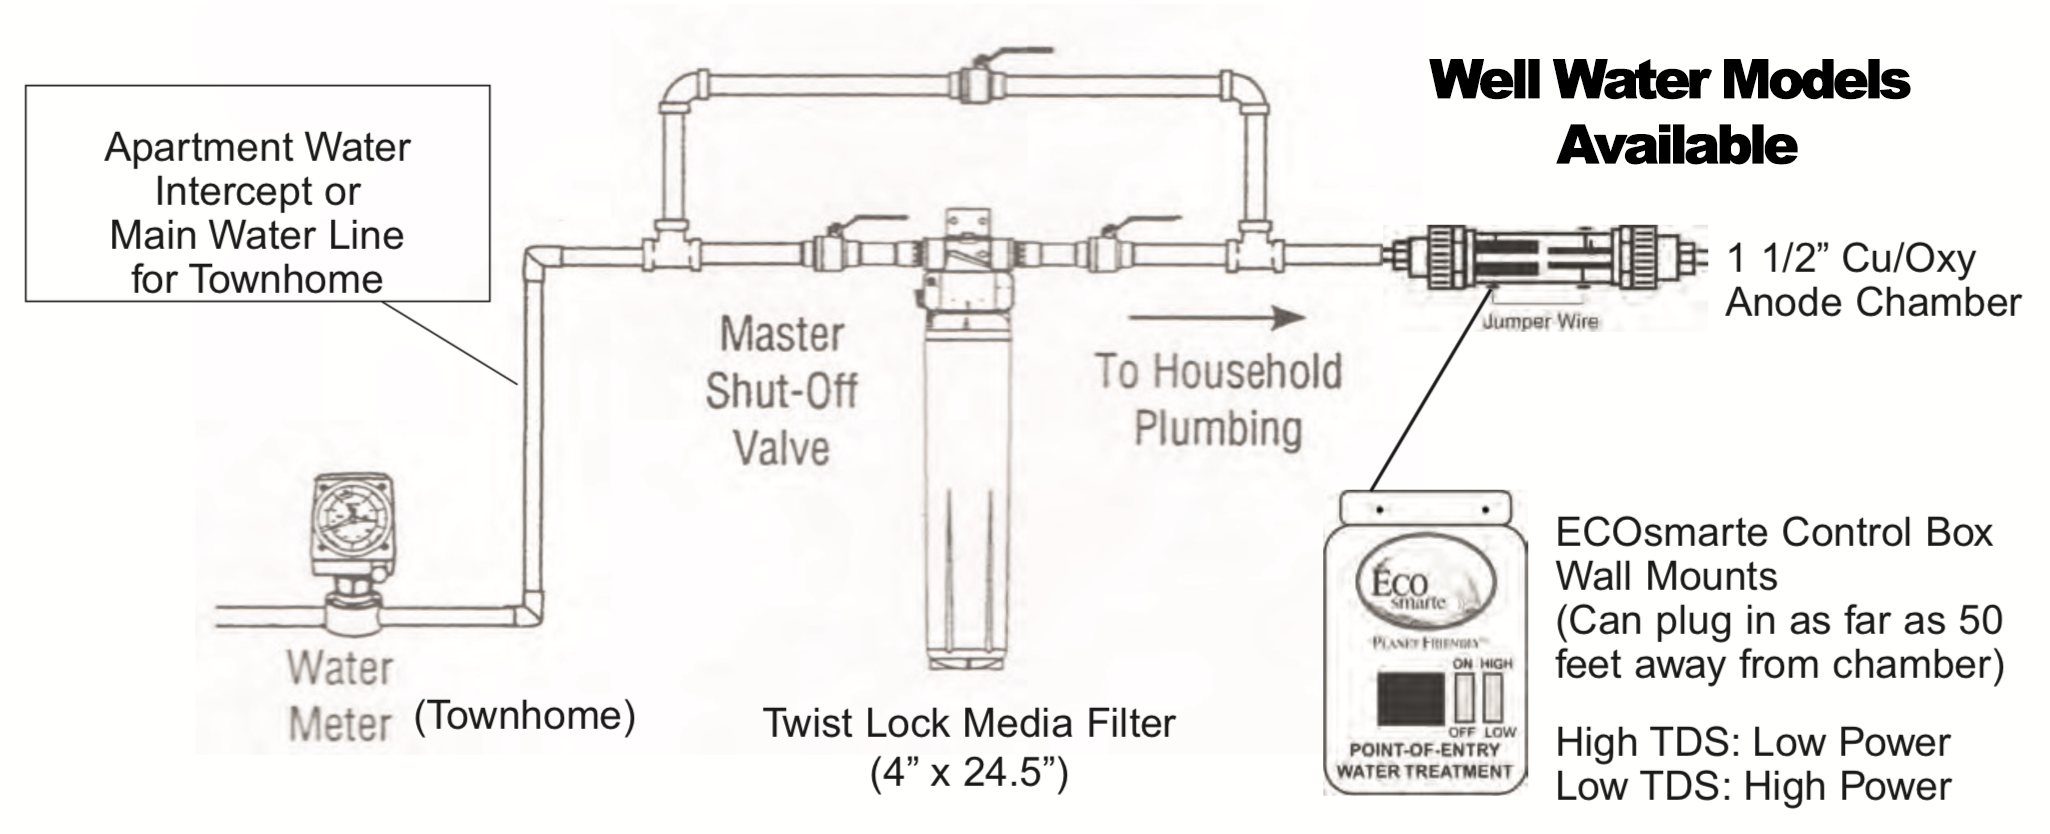 Well water system diagram